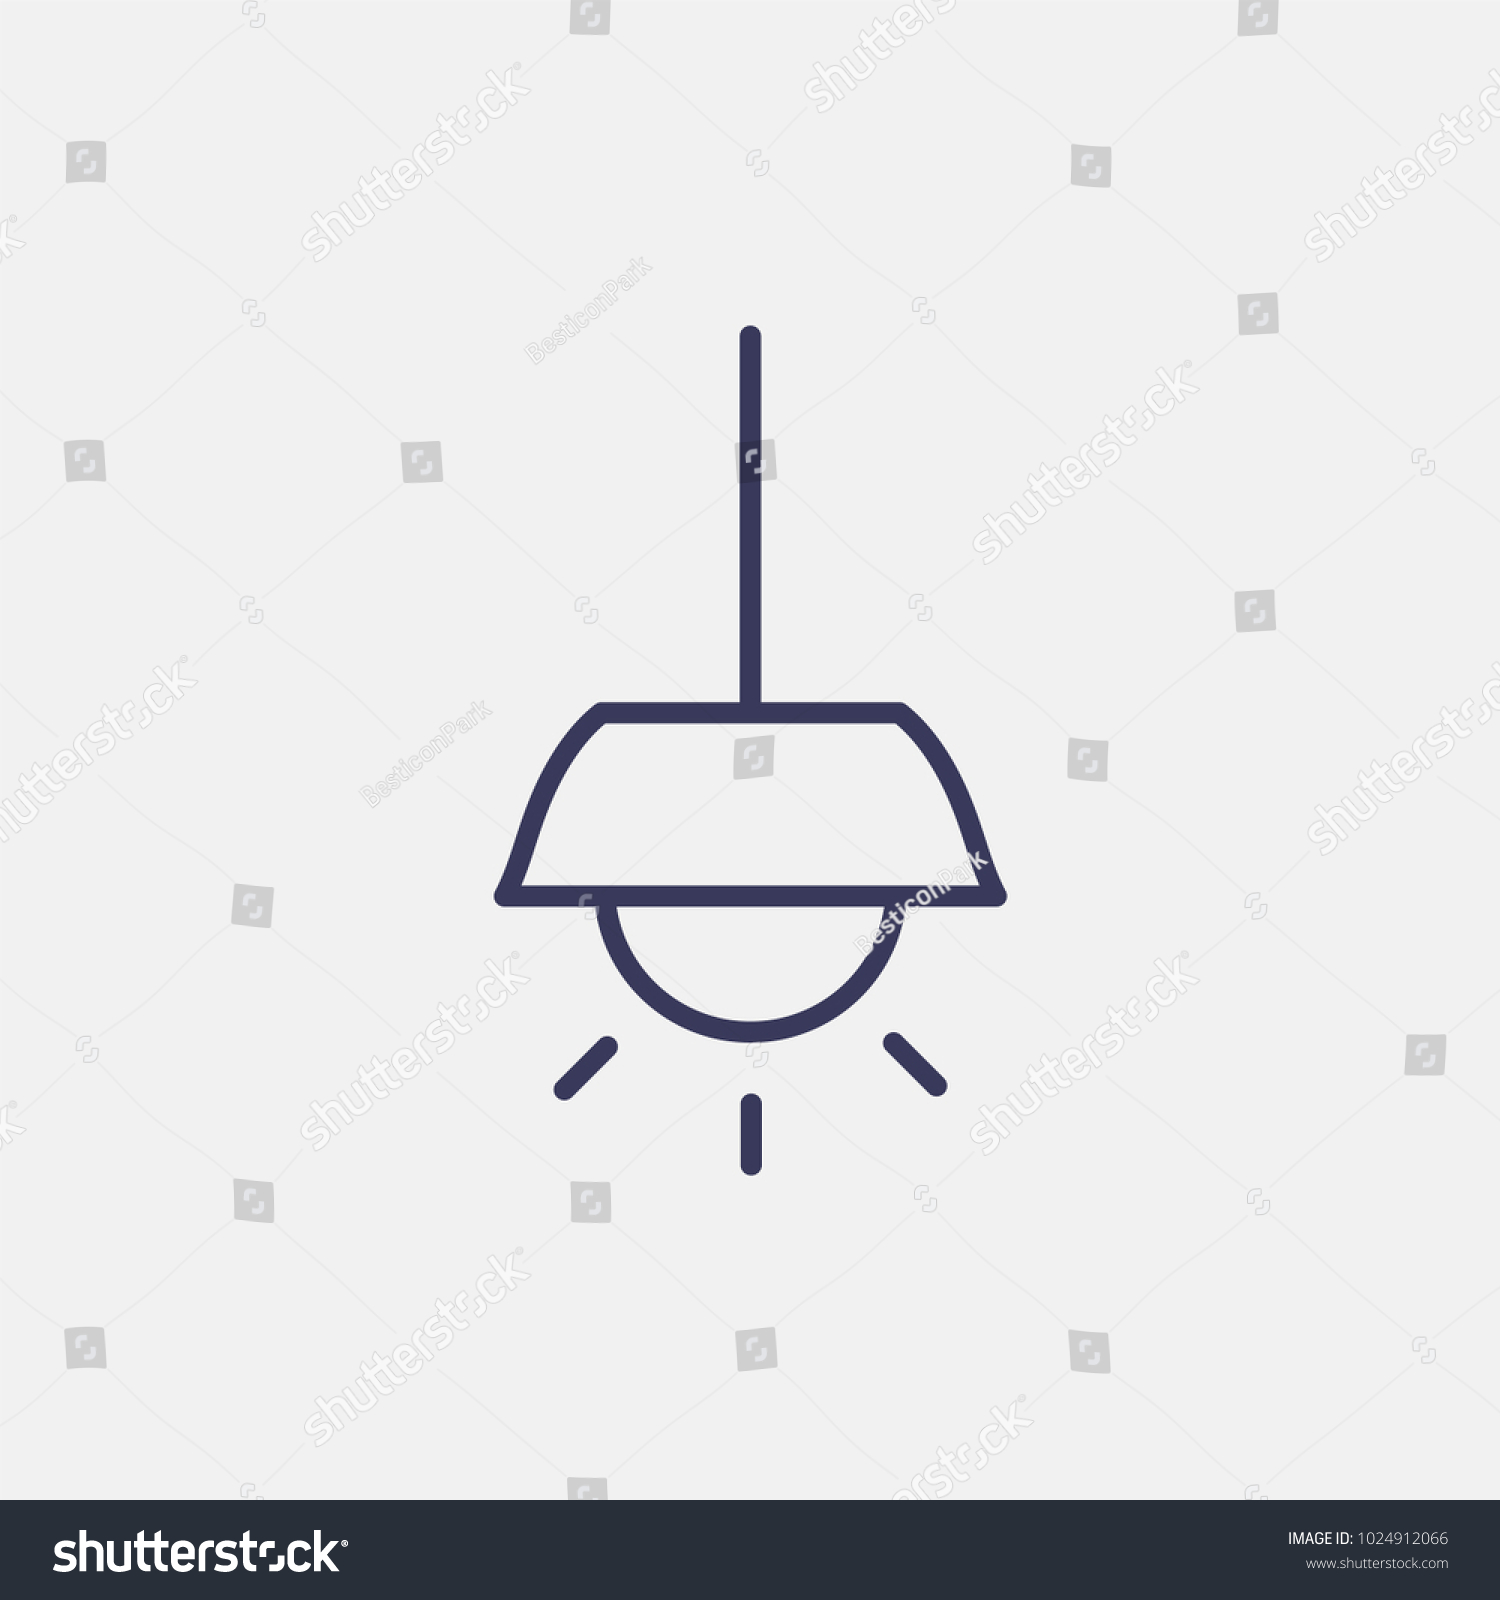 Outline chandeliers icon illustration isolated vector stock vector outline chandeliers icon illustration isolated vector sign symbol arubaitofo Images